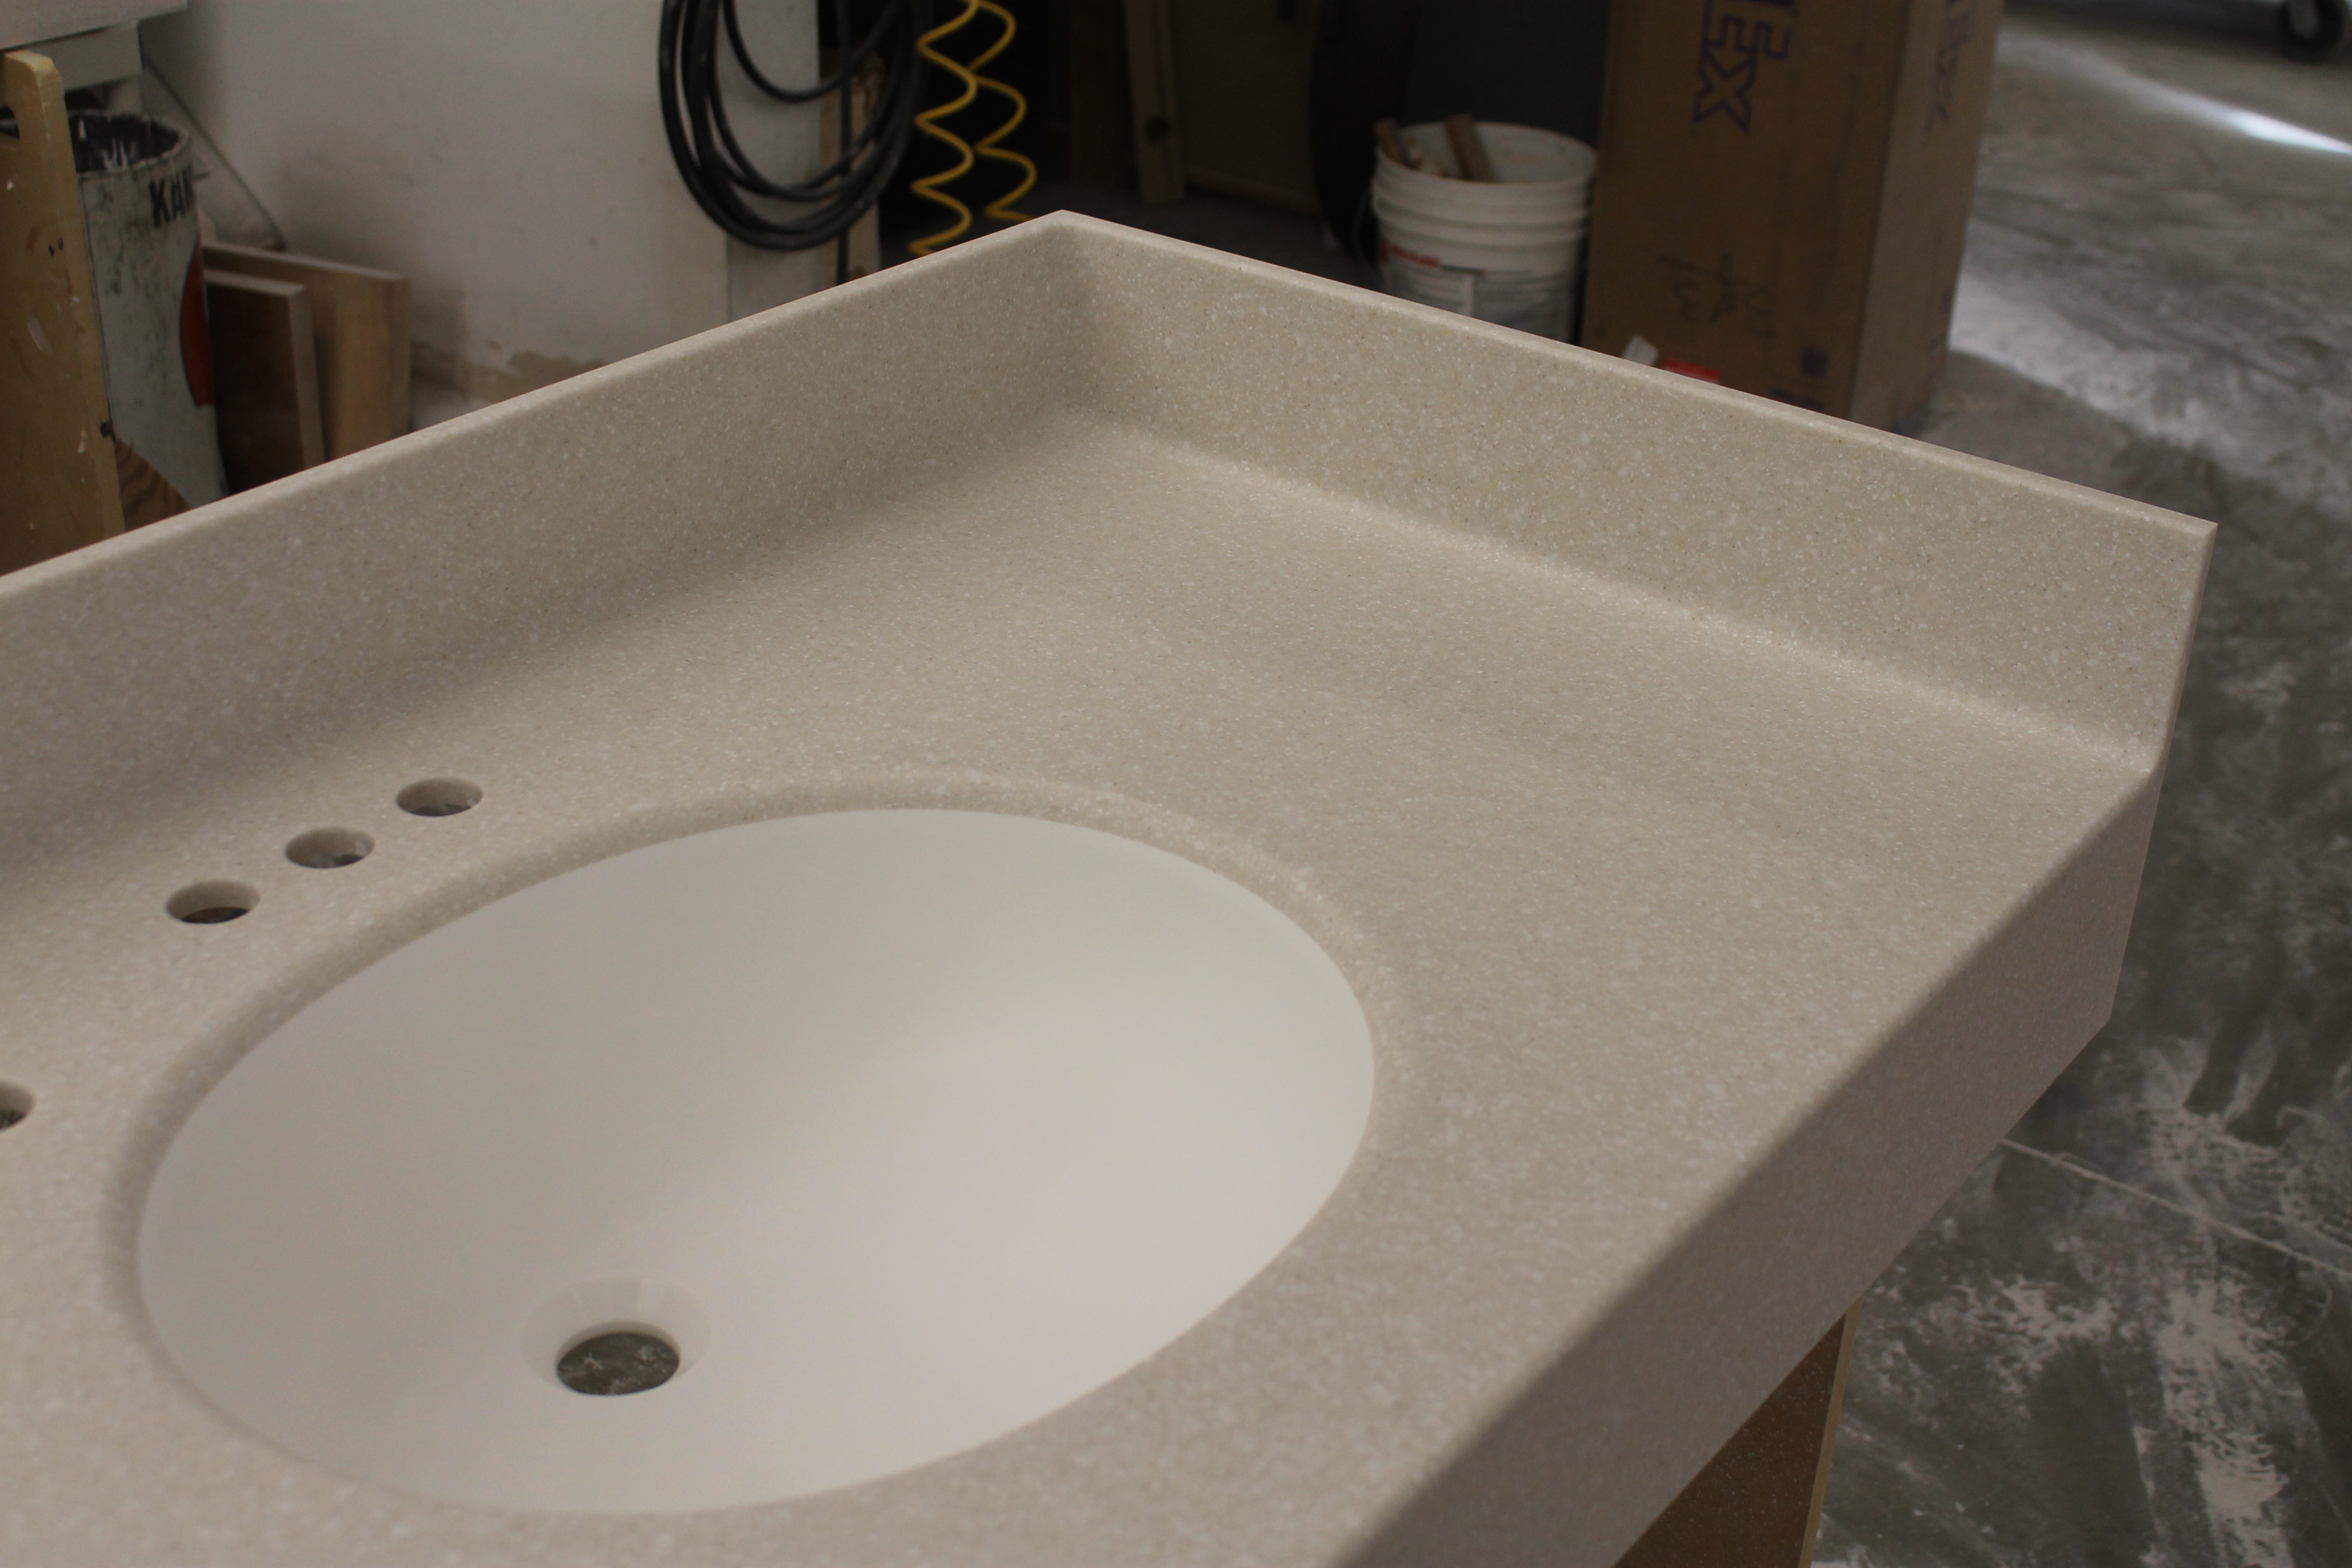 How To Clean Corian Sinks And Countertops Seamless Sinks From Countertops By Starian In Connecticut